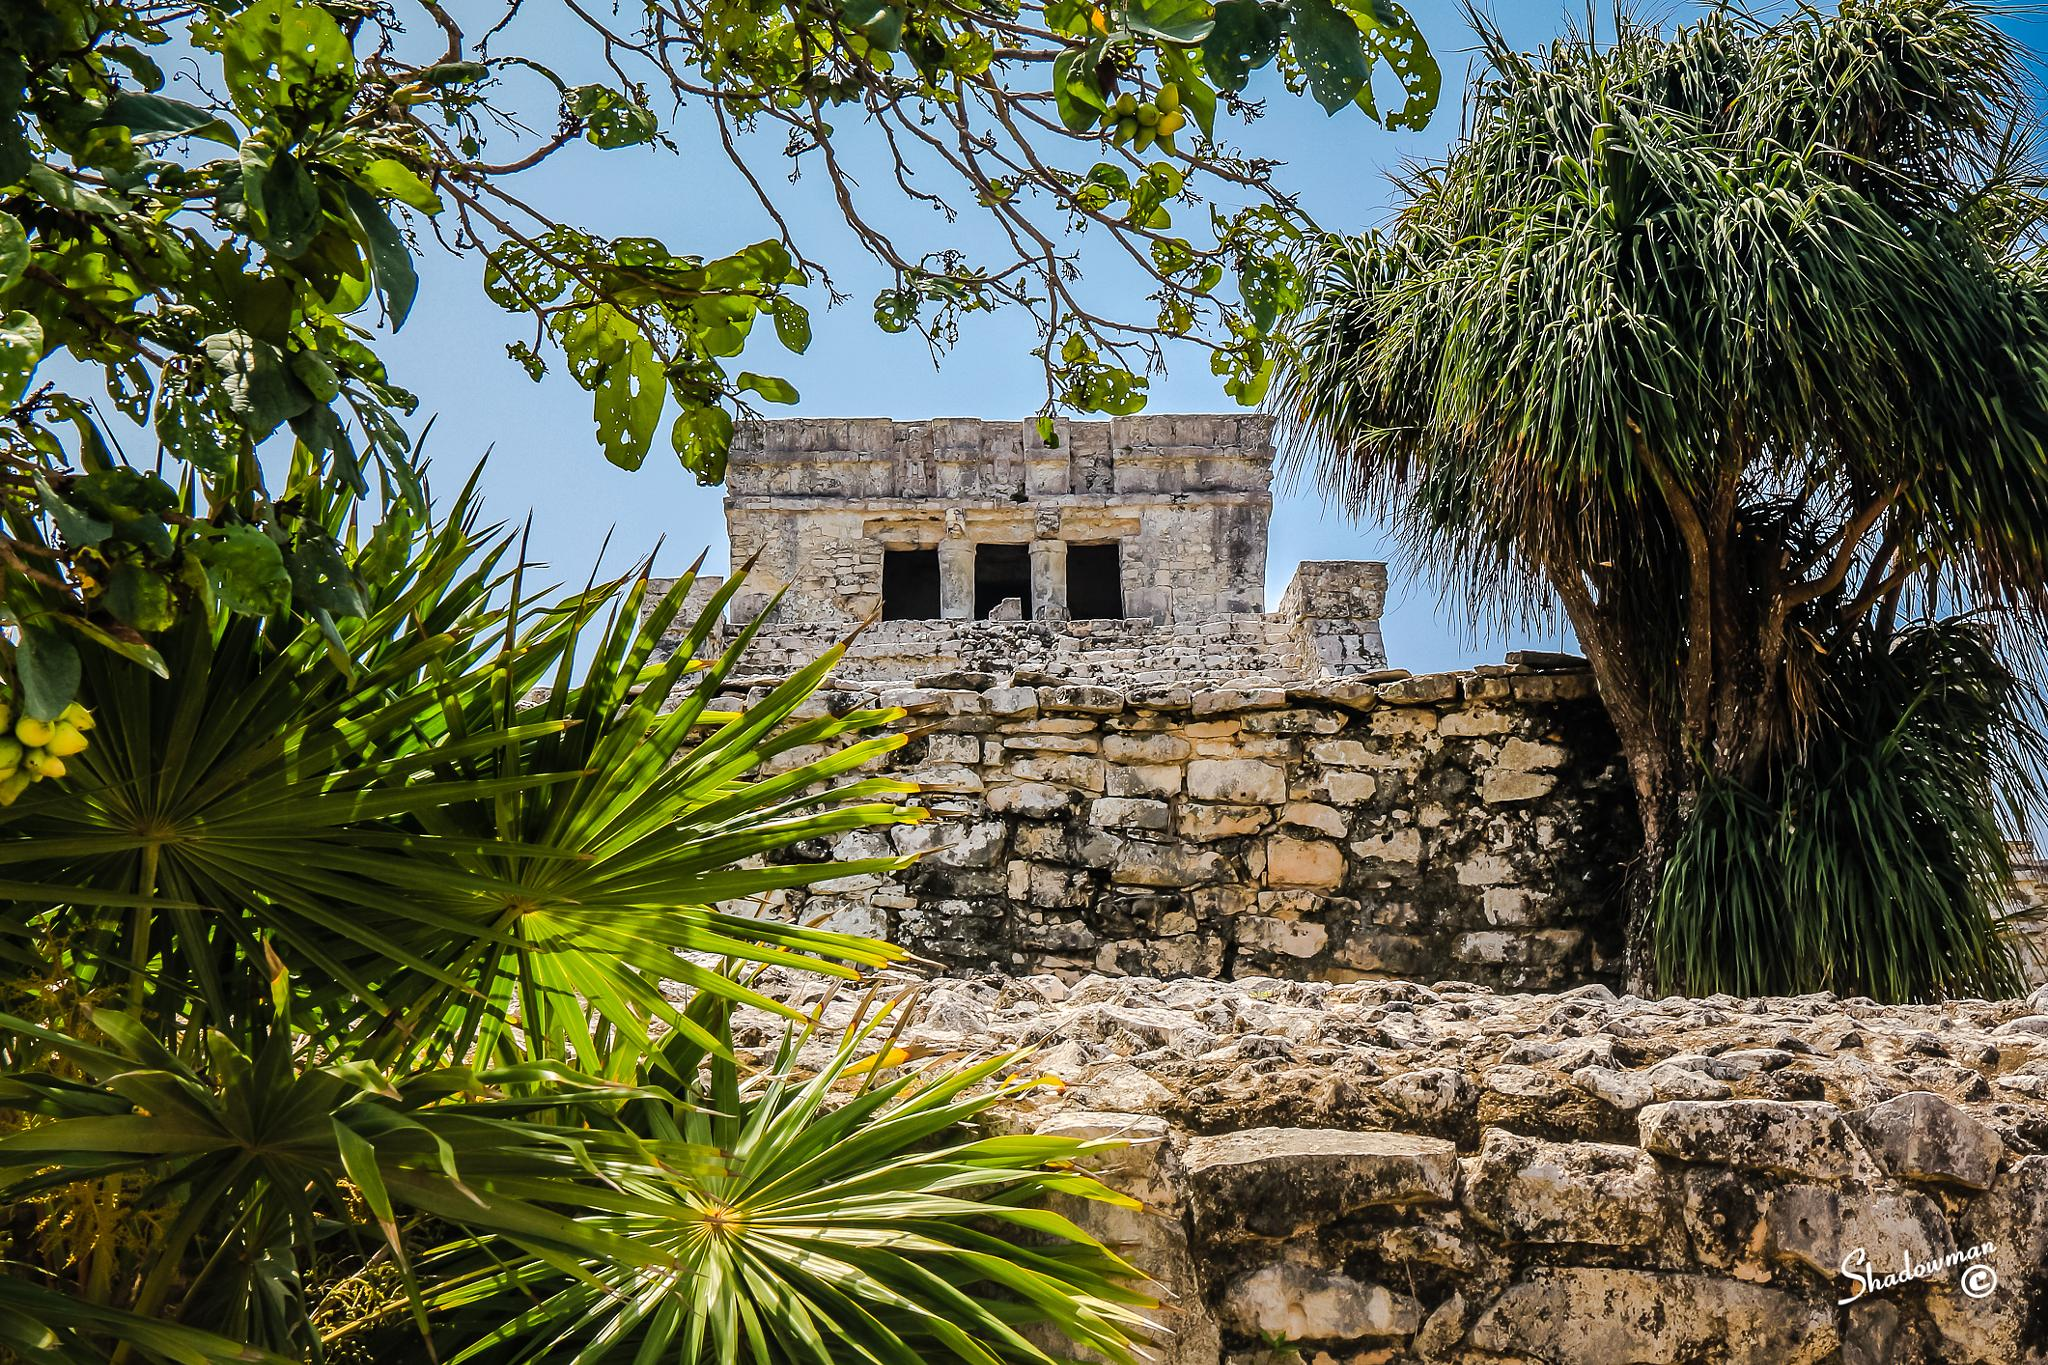 Mayan Temple by In Focus 5.6 Photography